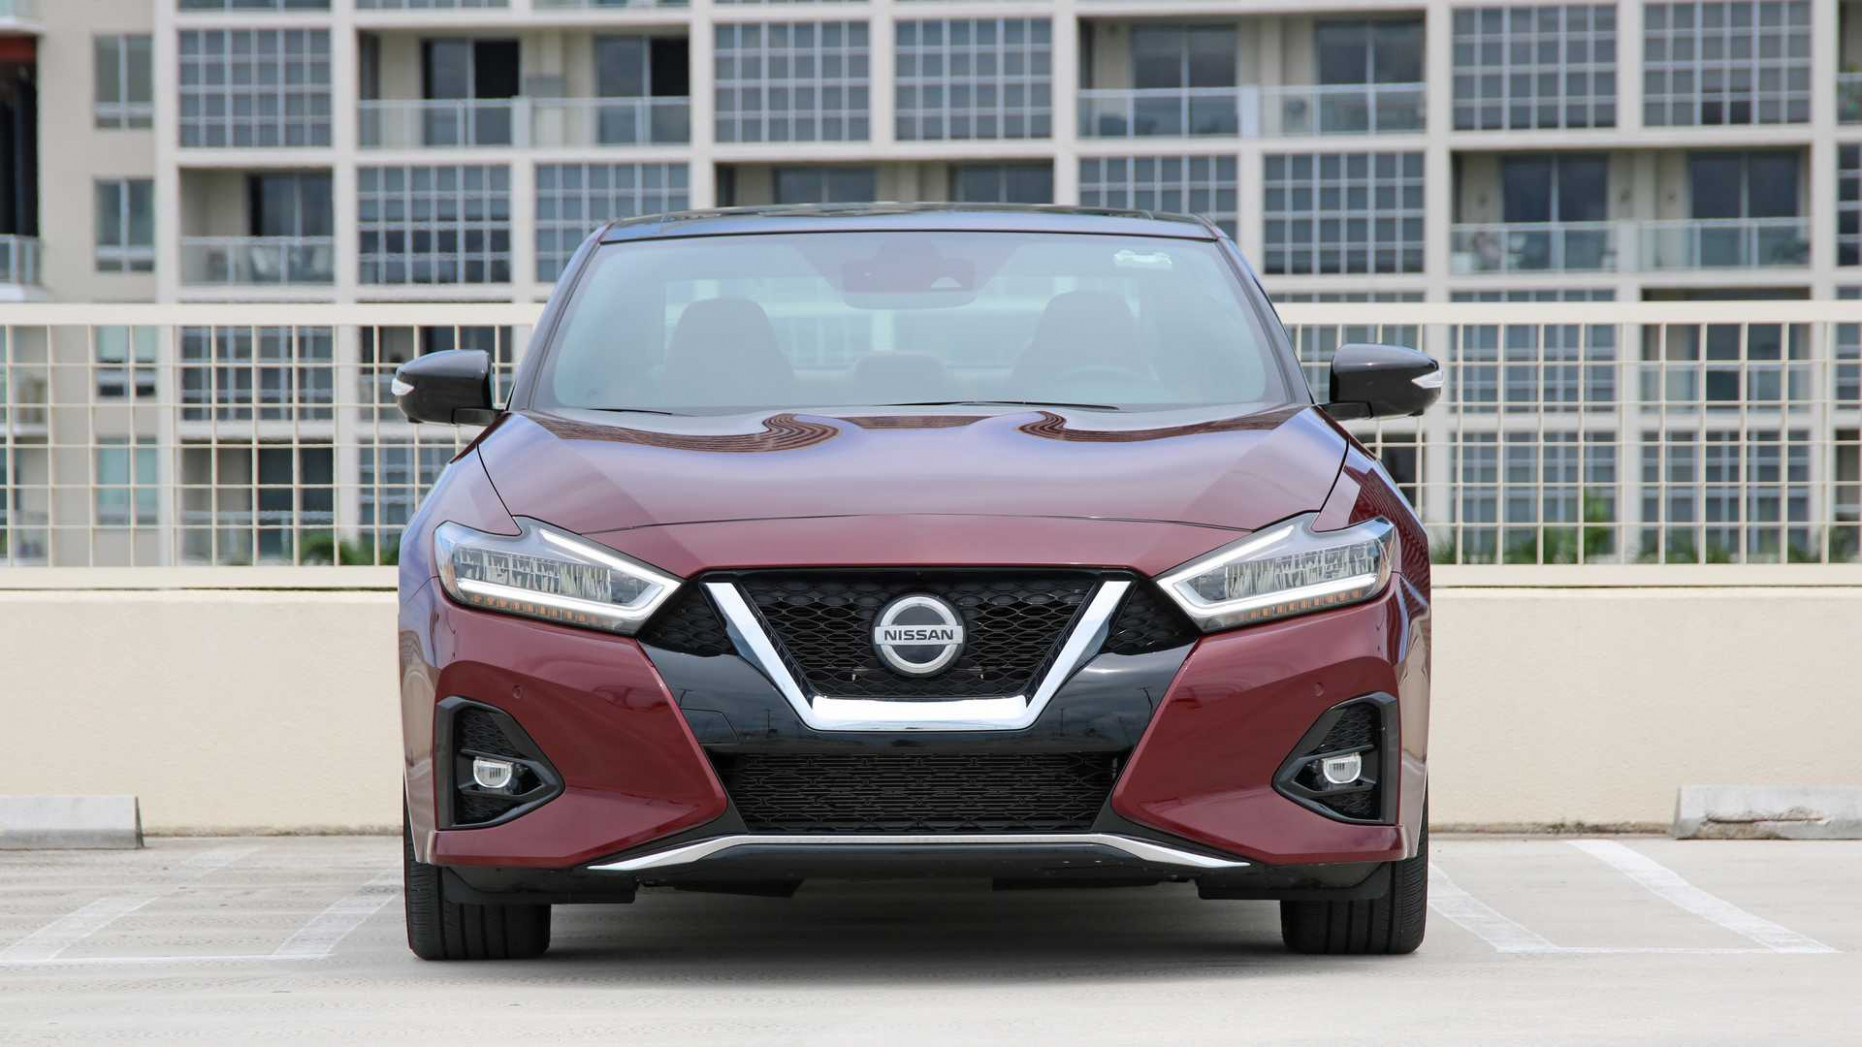 First Drive When Will The 2022 Nissan Maxima Come Out